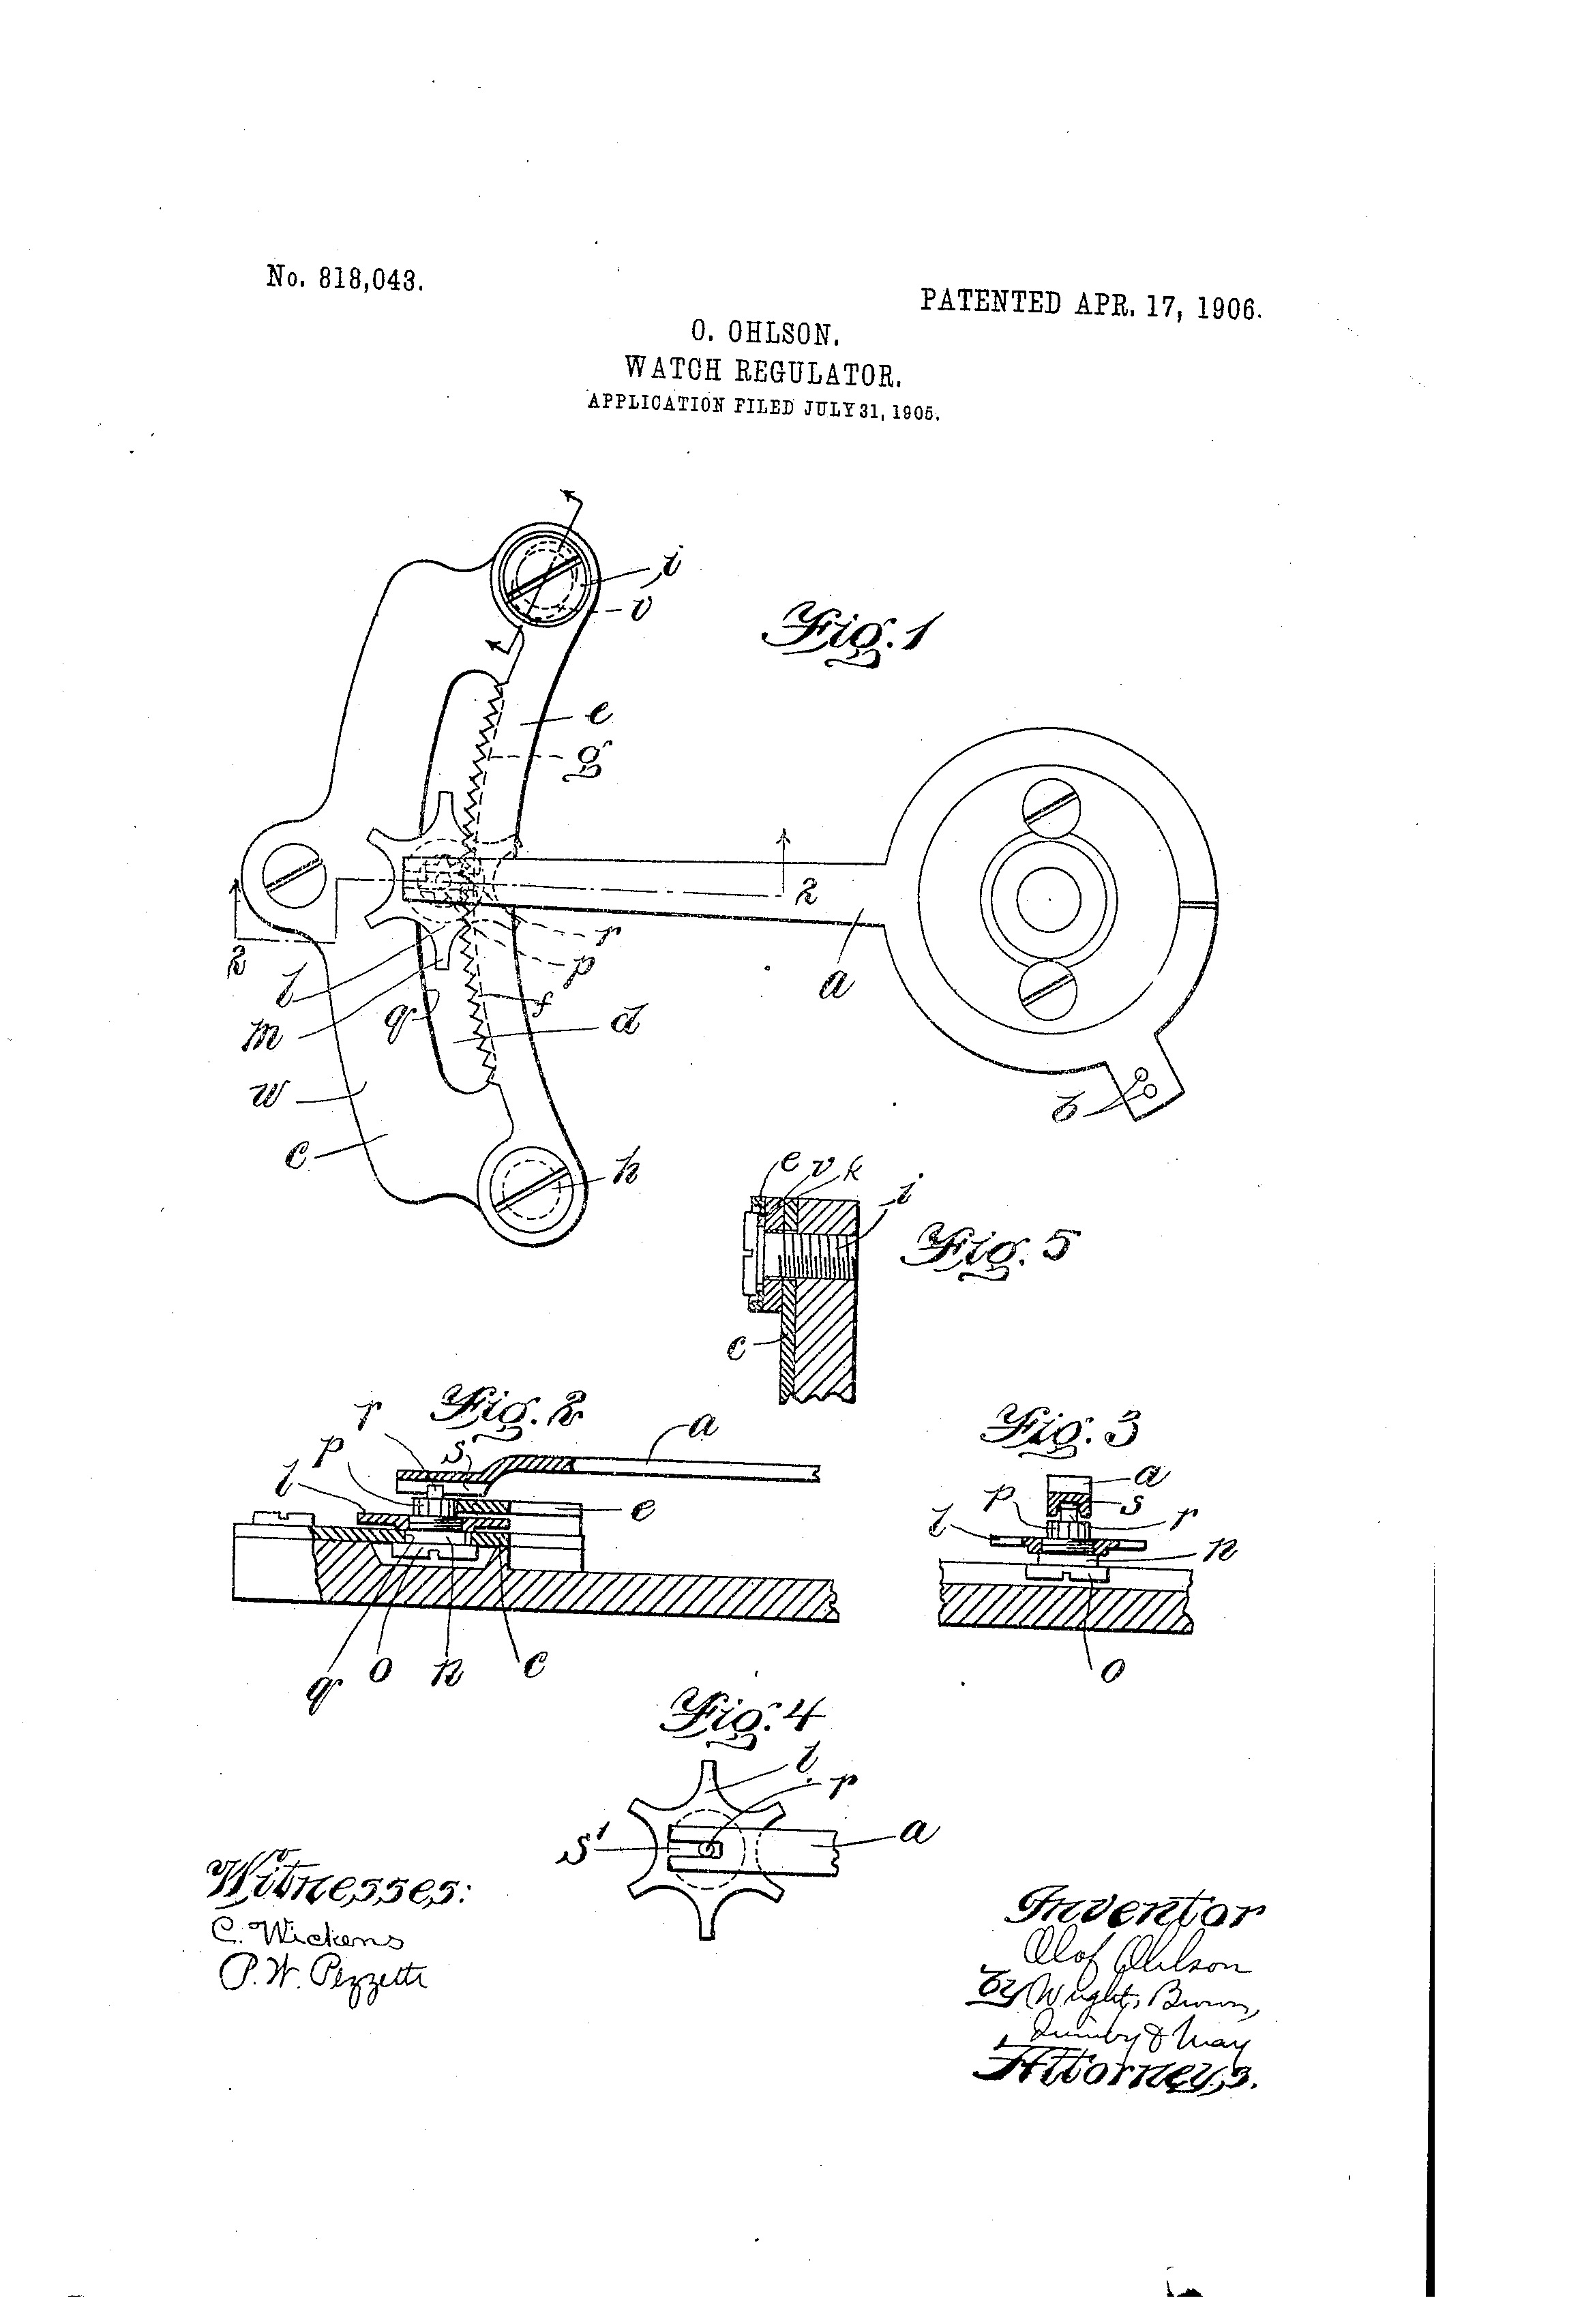 Patent Watch Regulator by Olof Ohlson Issued Apr 17, 1906